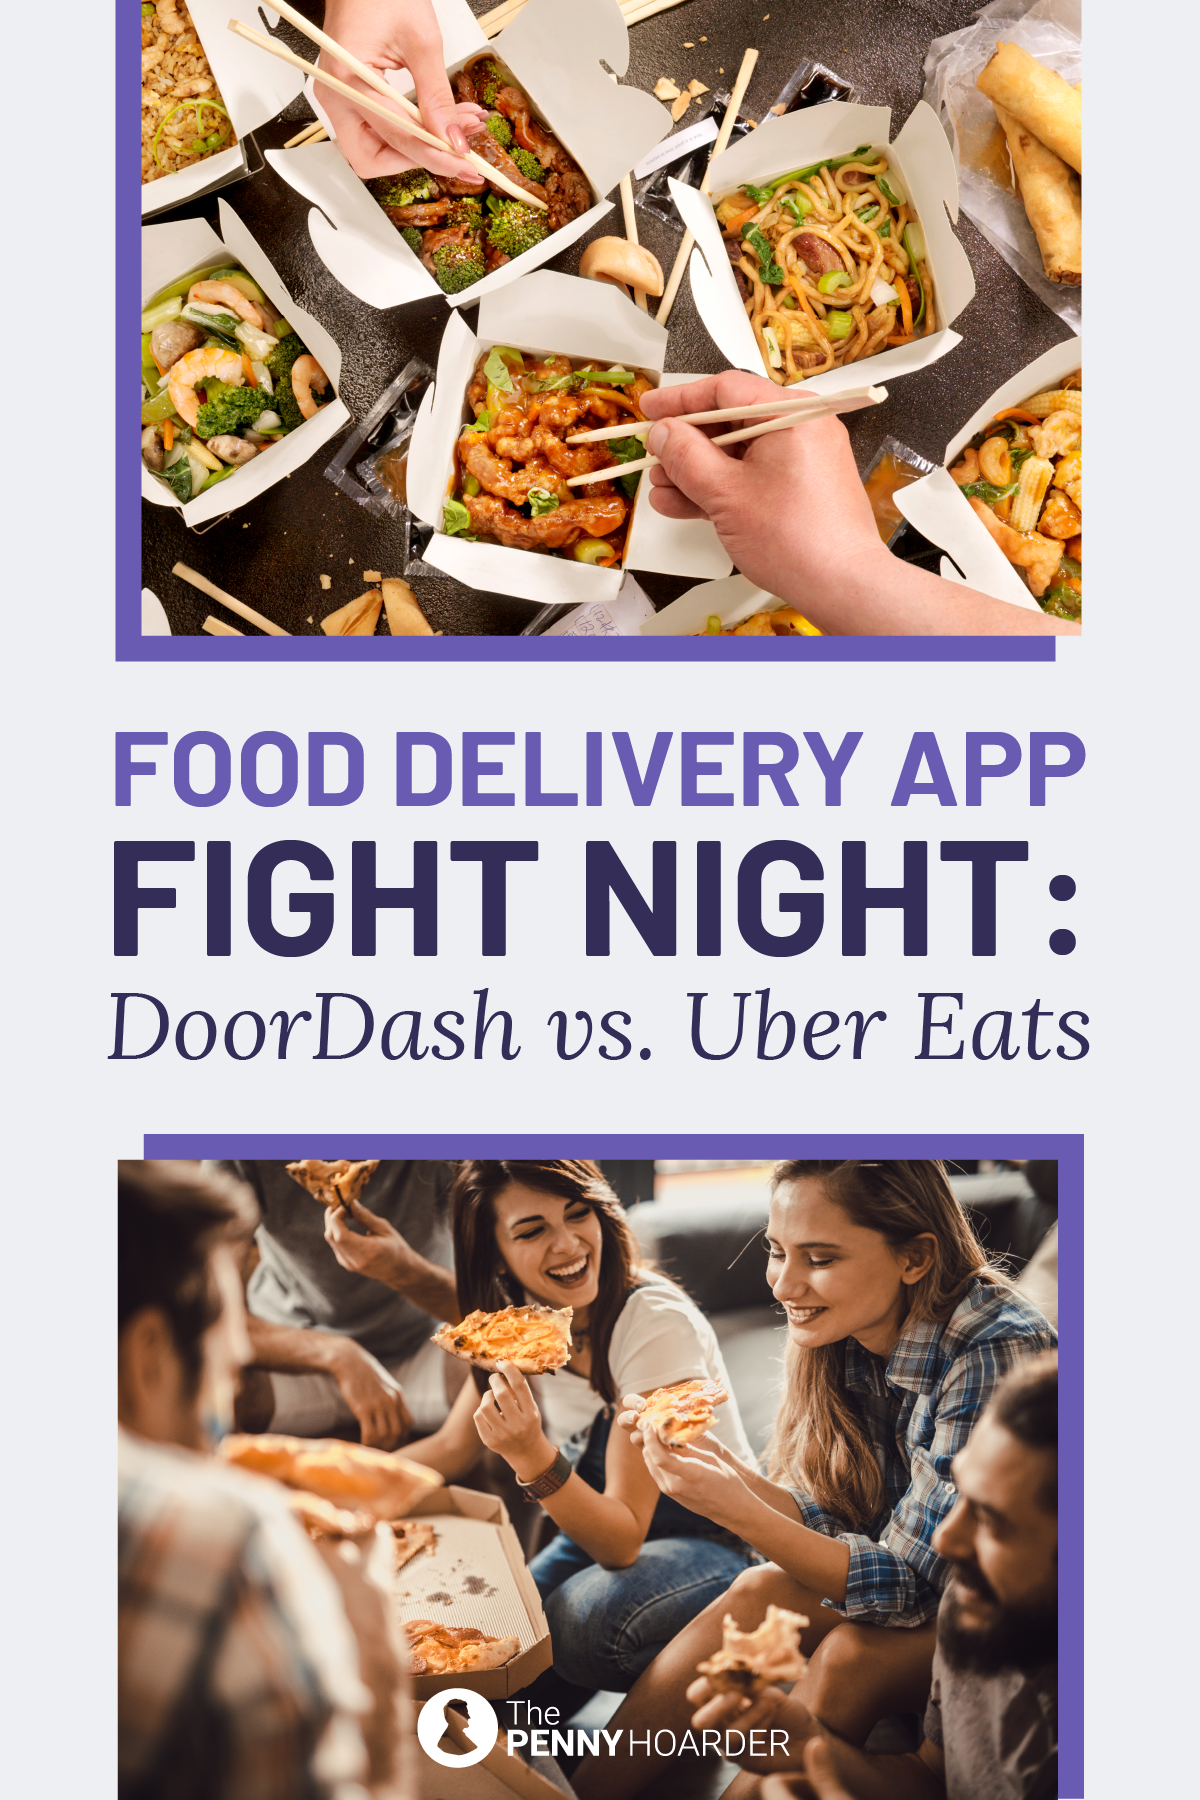 Delivery App Fight Night DoorDash vs. Uber Eats Meal